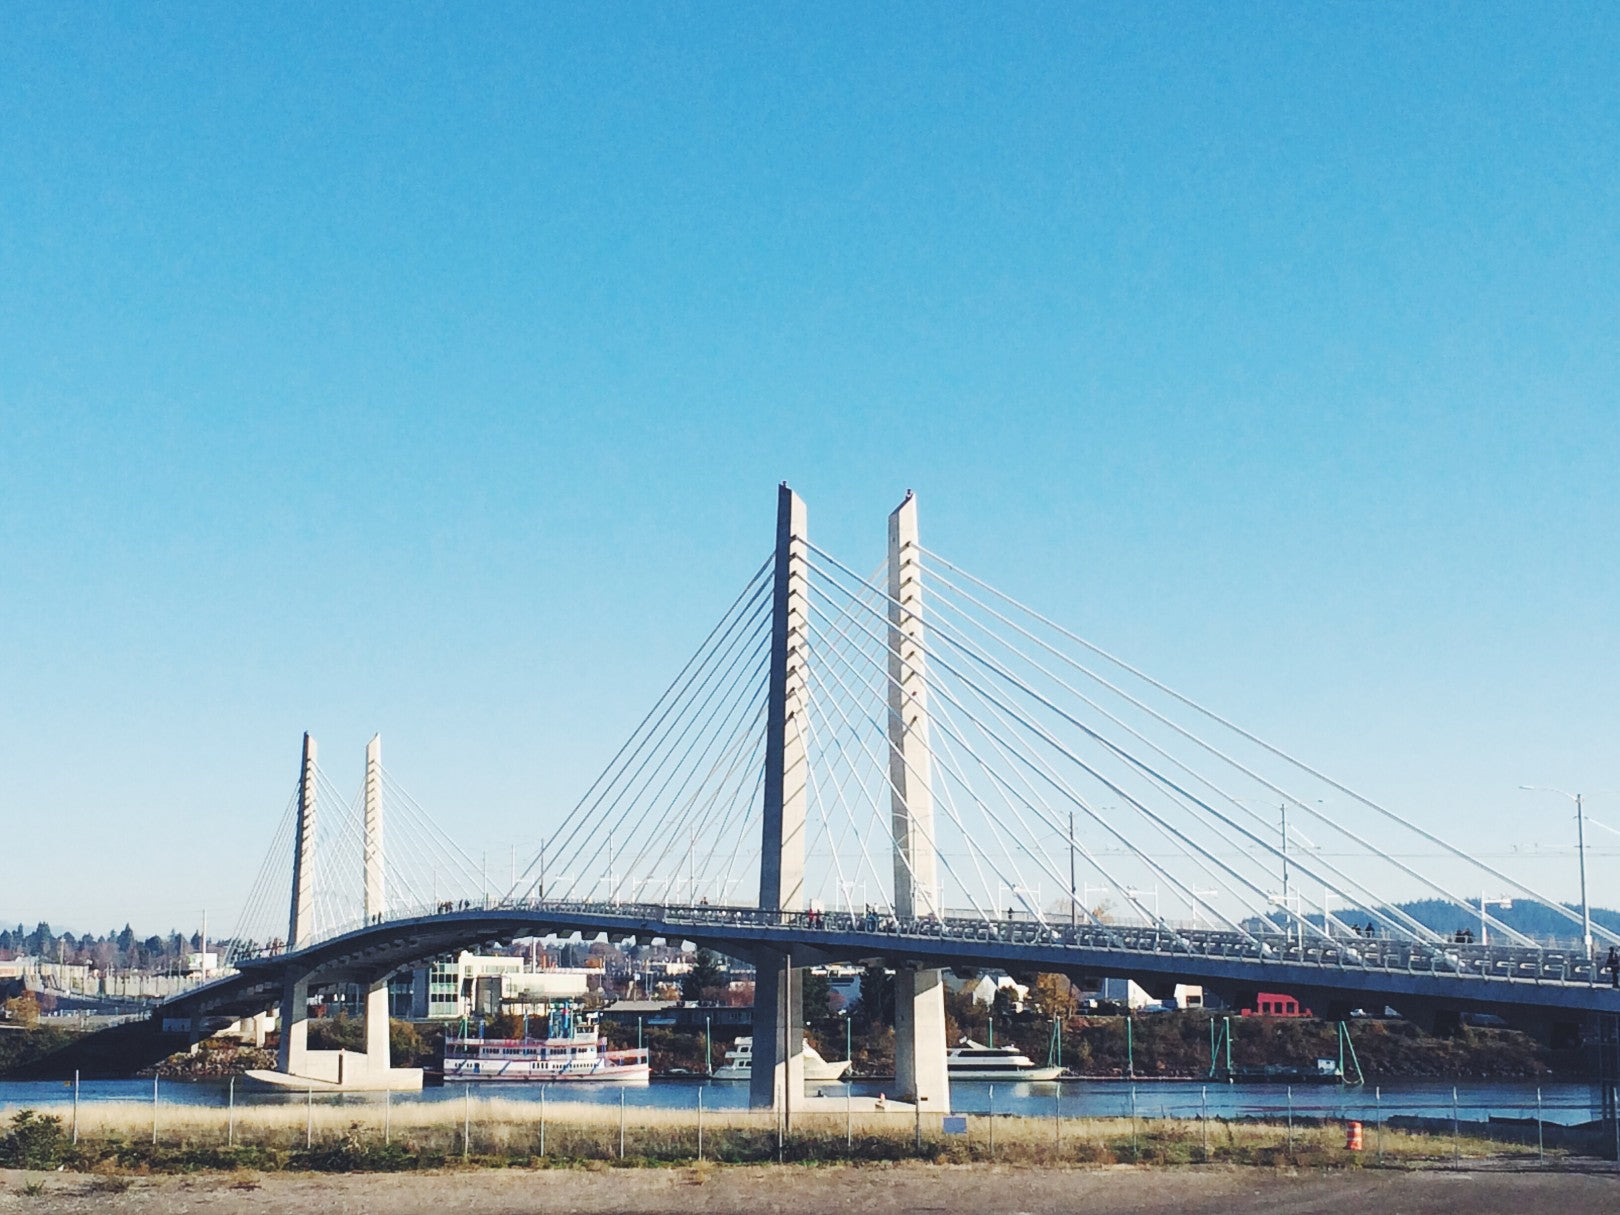 Tilikum Crossing Portland, OR